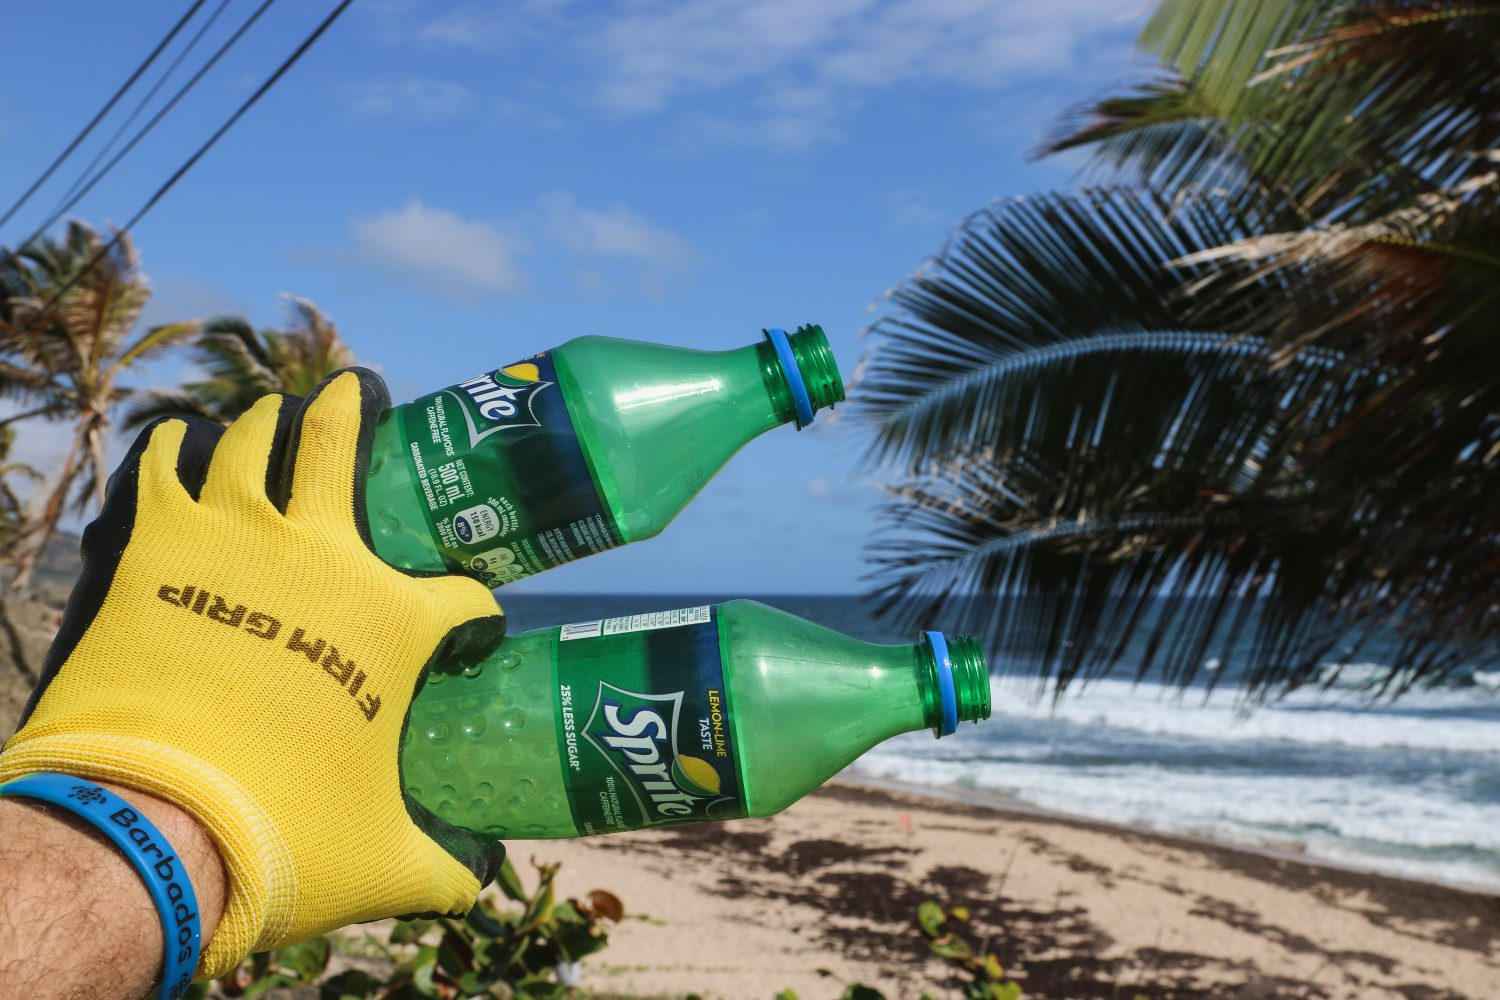 Plastic Bottle Deposit Scheme Could Be Introduced Within Months